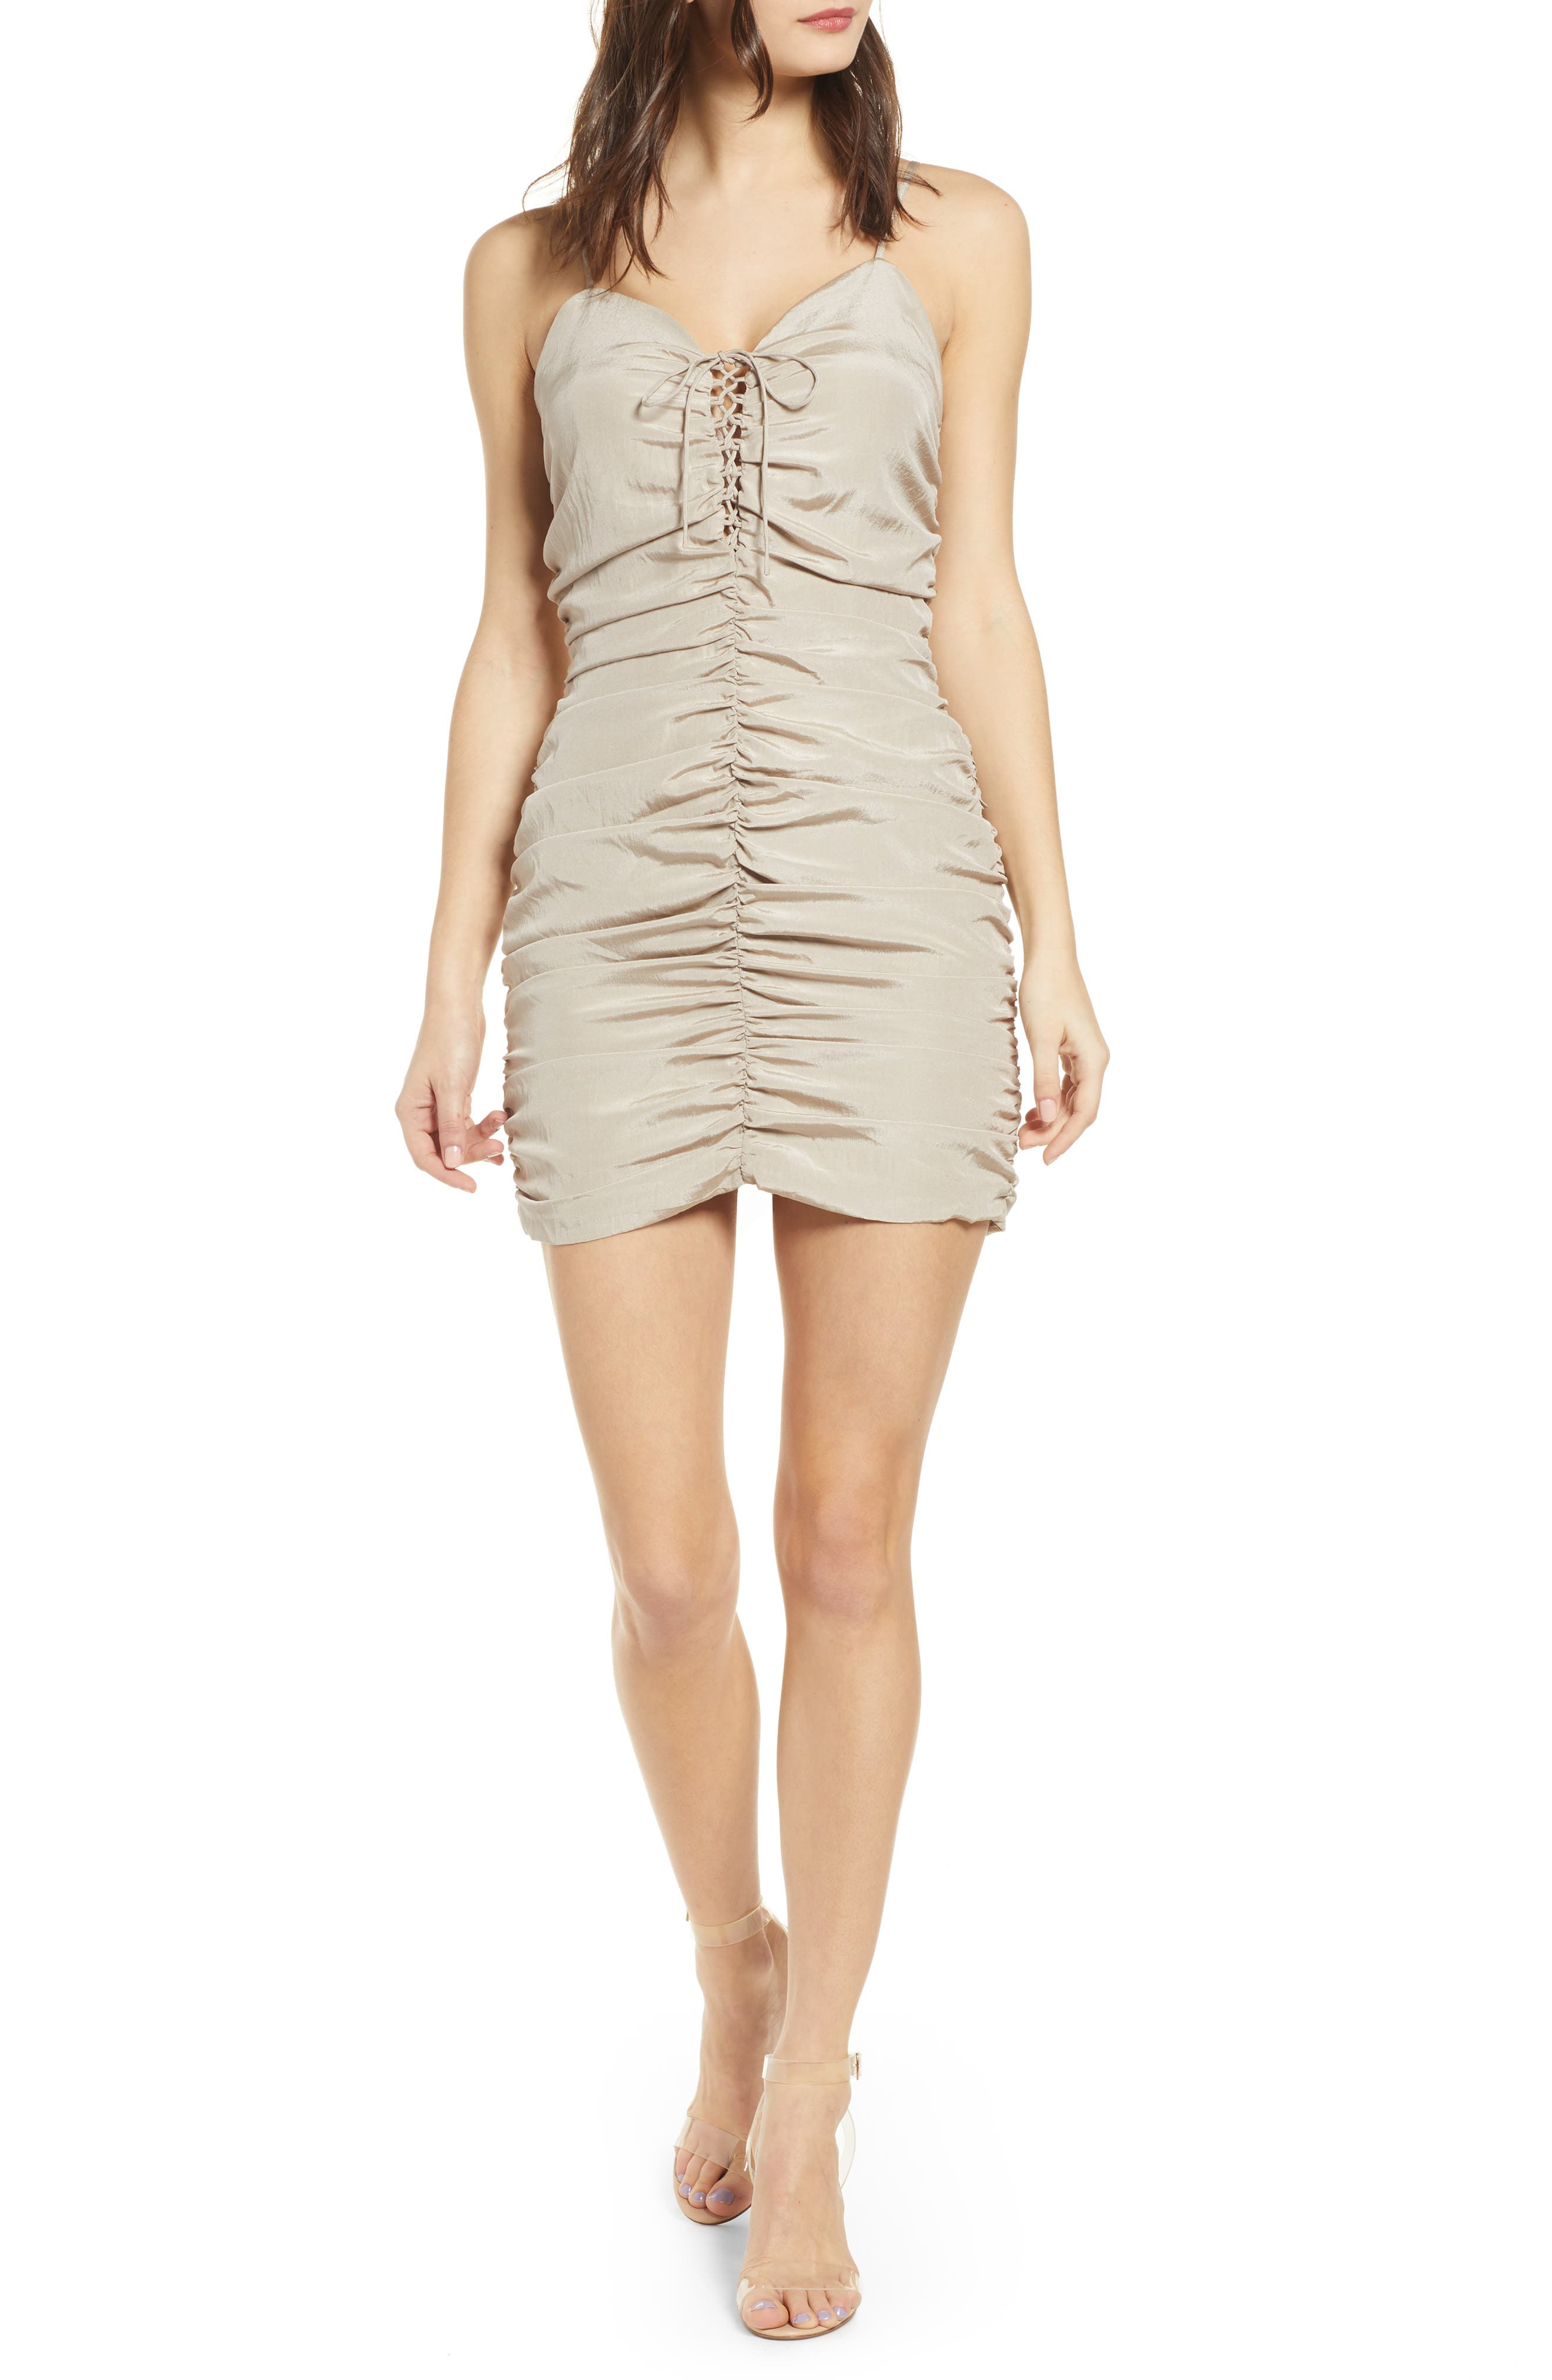 J.o.a. Lace-Up Ruched Dress, Beige